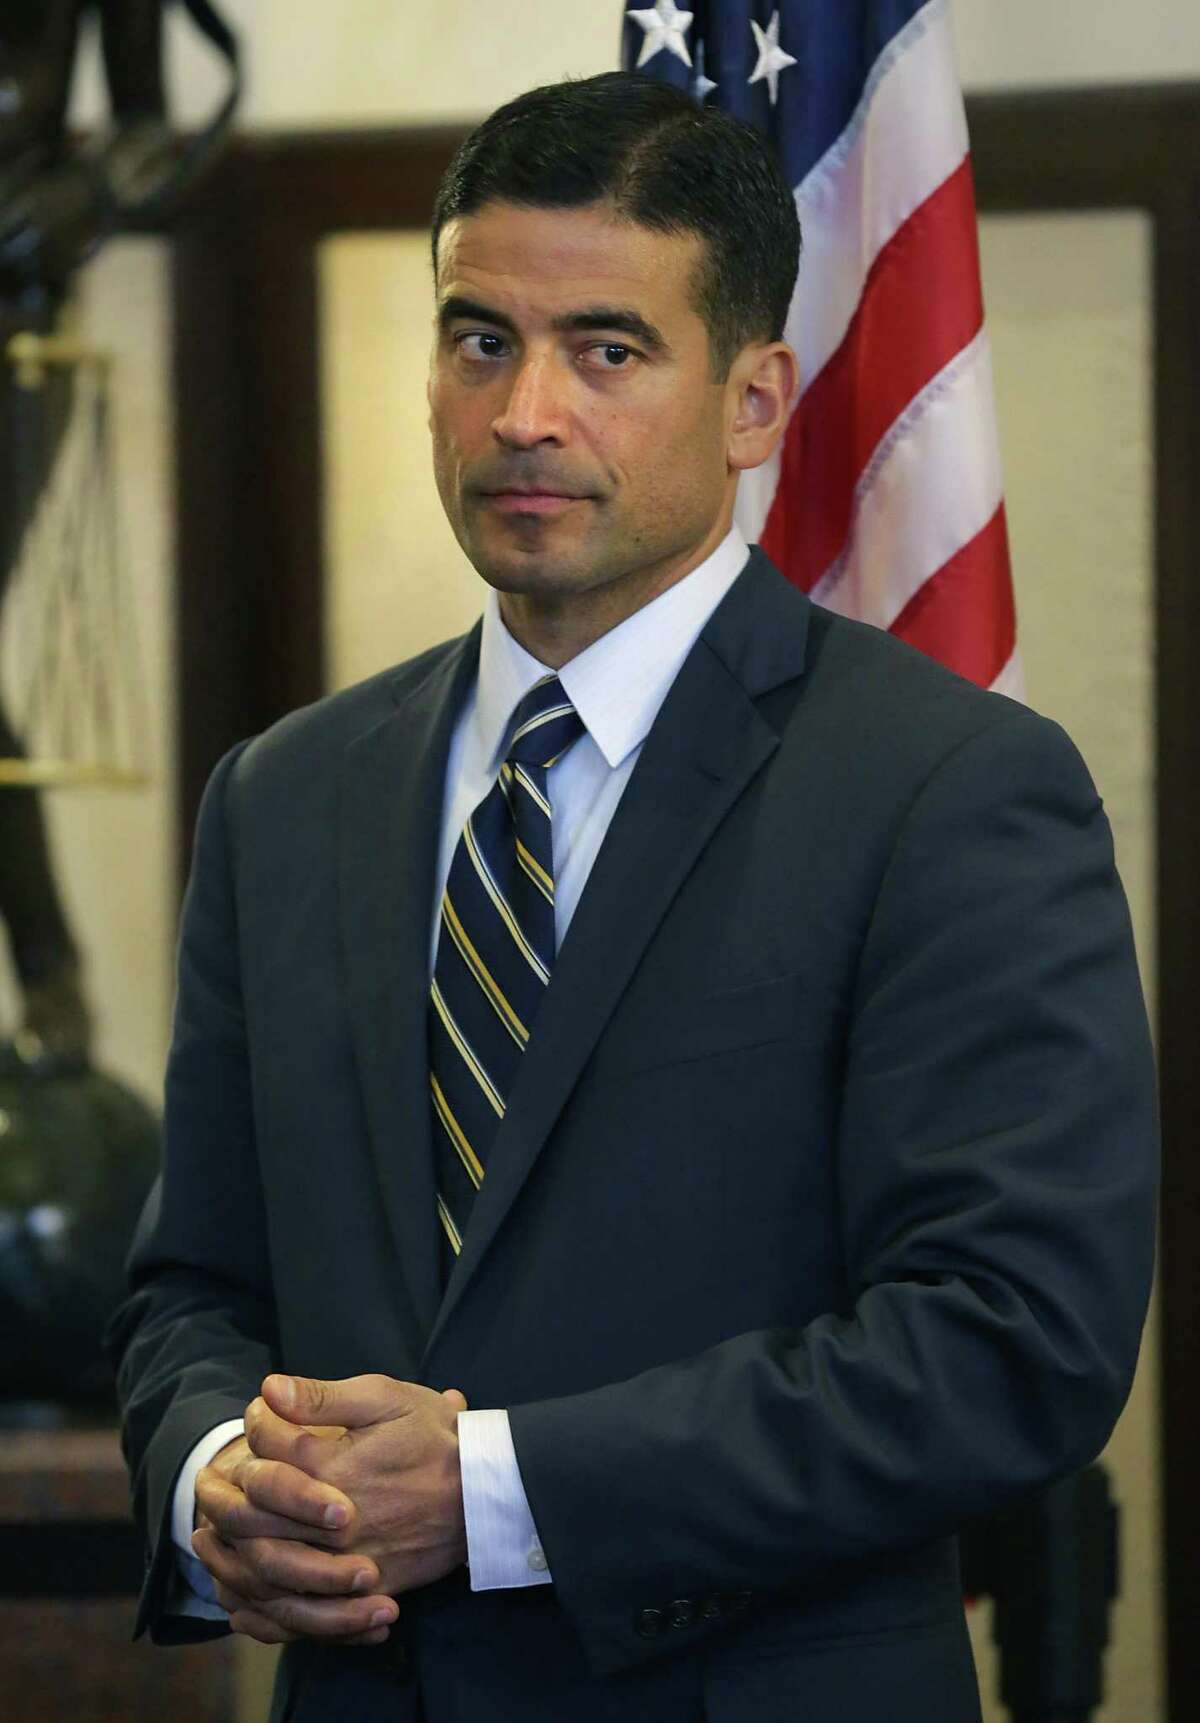 A source said Bexar County District Attorney Nico LaHood has waived his right to a trial in district court, opting instead for a closed hearing before a panel of a grievance committee.